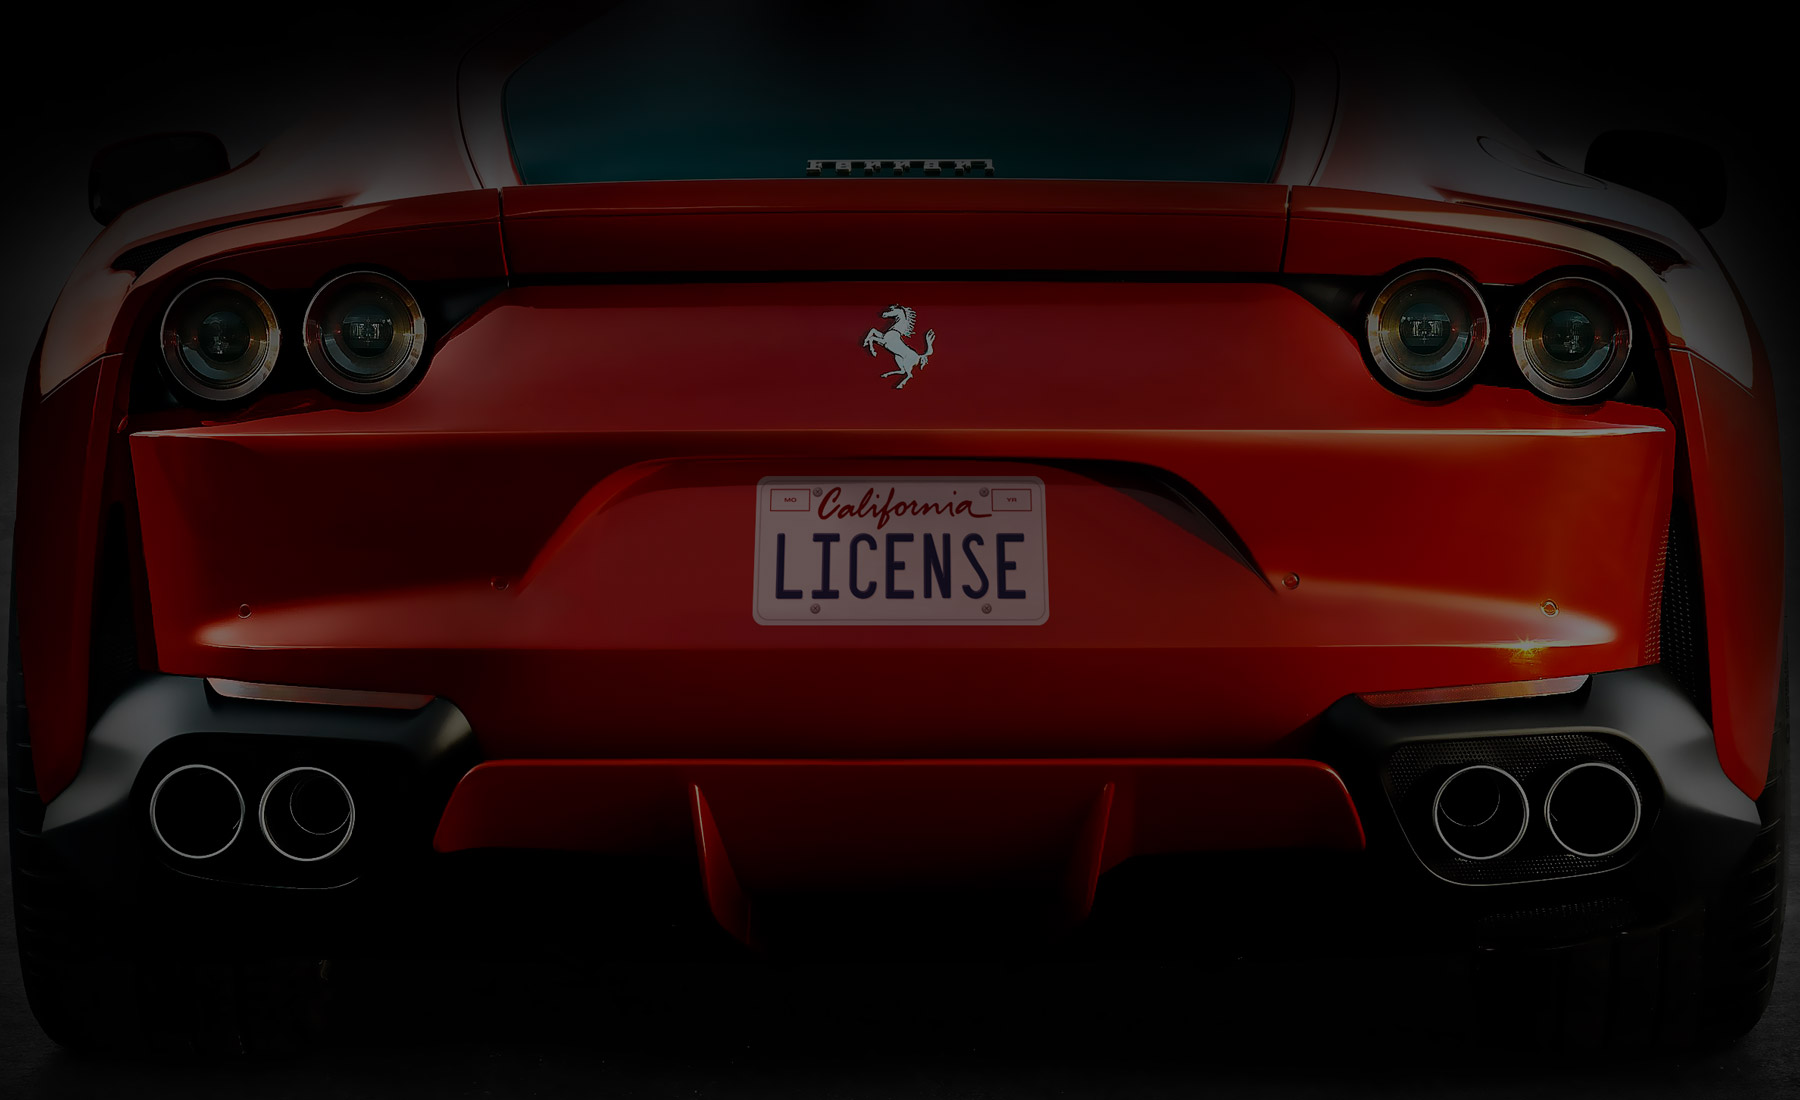 adhesive license plate replica